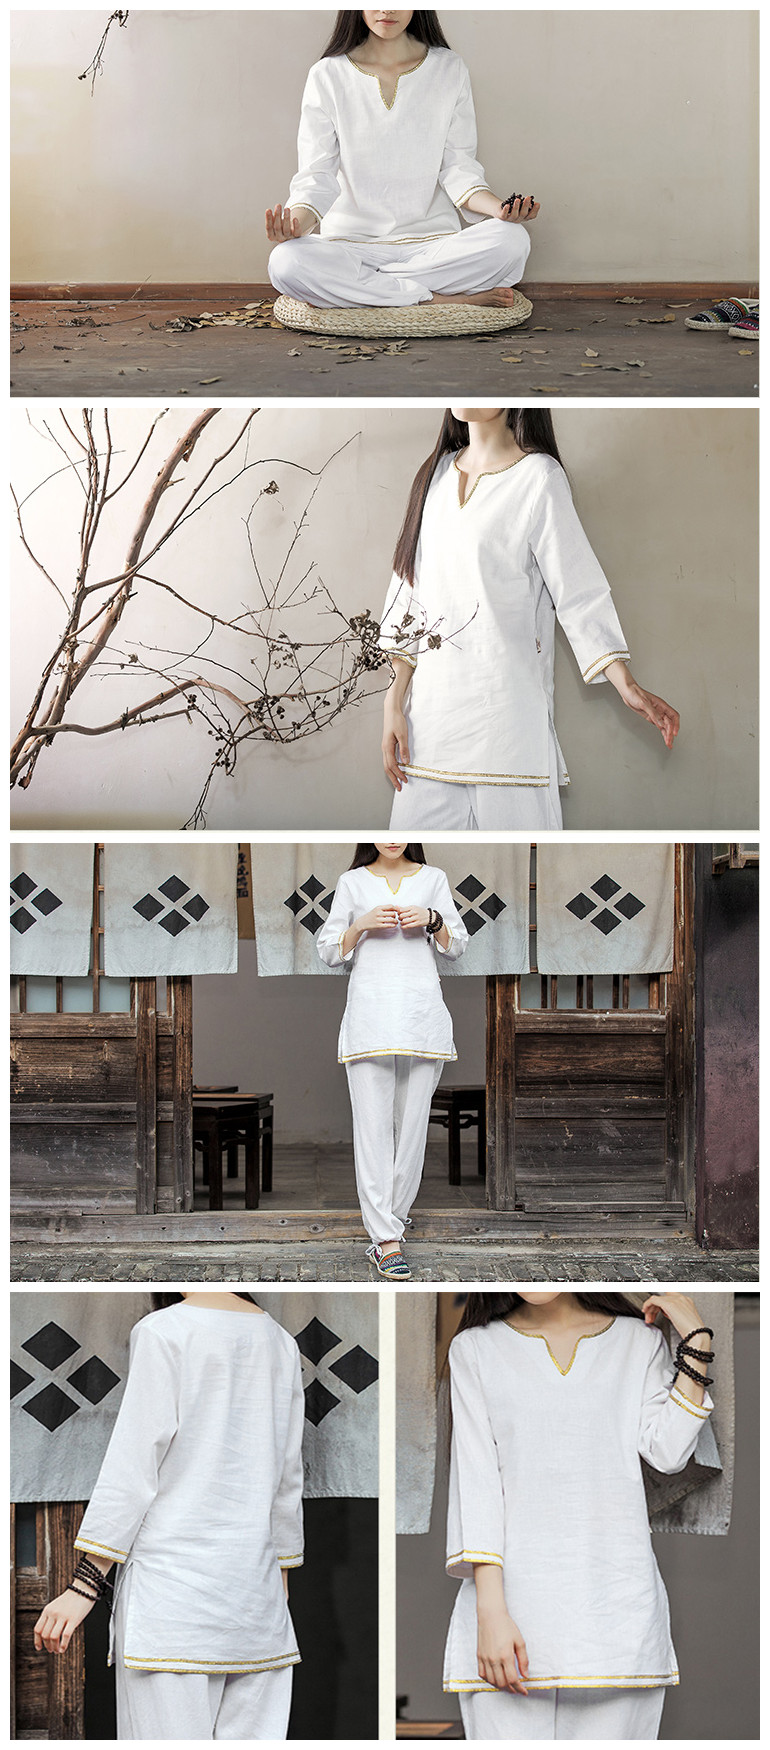 Women Yoga Suit Cotton Linen Meditation Clothing Set Lady Dance Fitness Clothes Sportswear